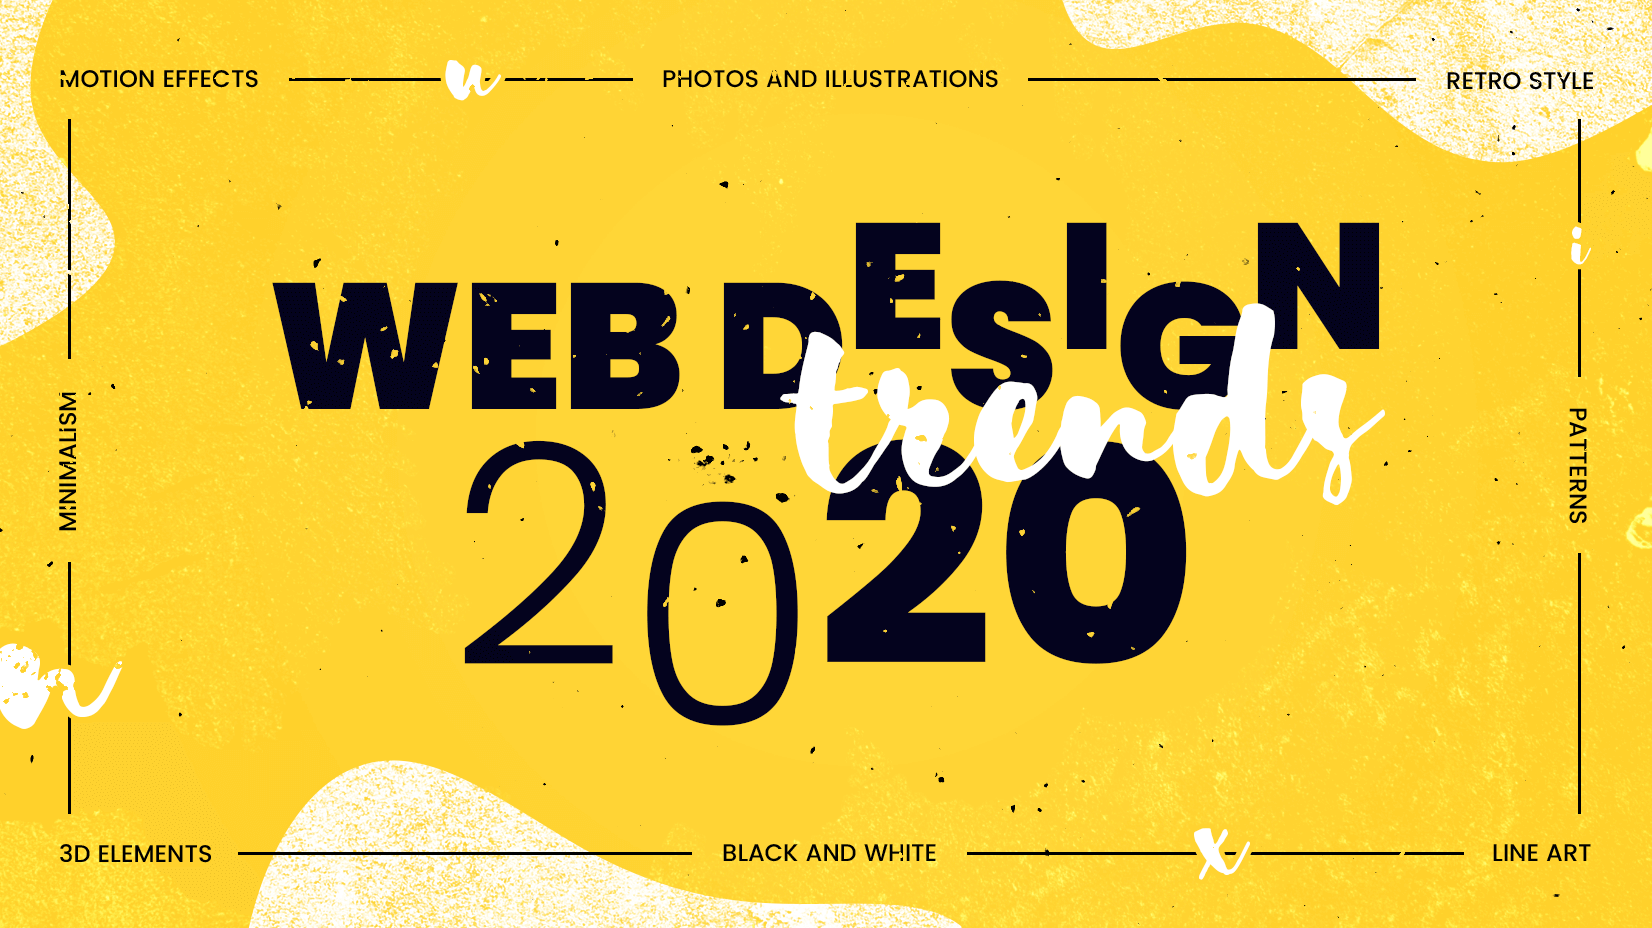 Leading Web Design Trends To Follow In 2020 2021 In 2020 Modern Web Design Web Design Trends Modern Web Design Trends